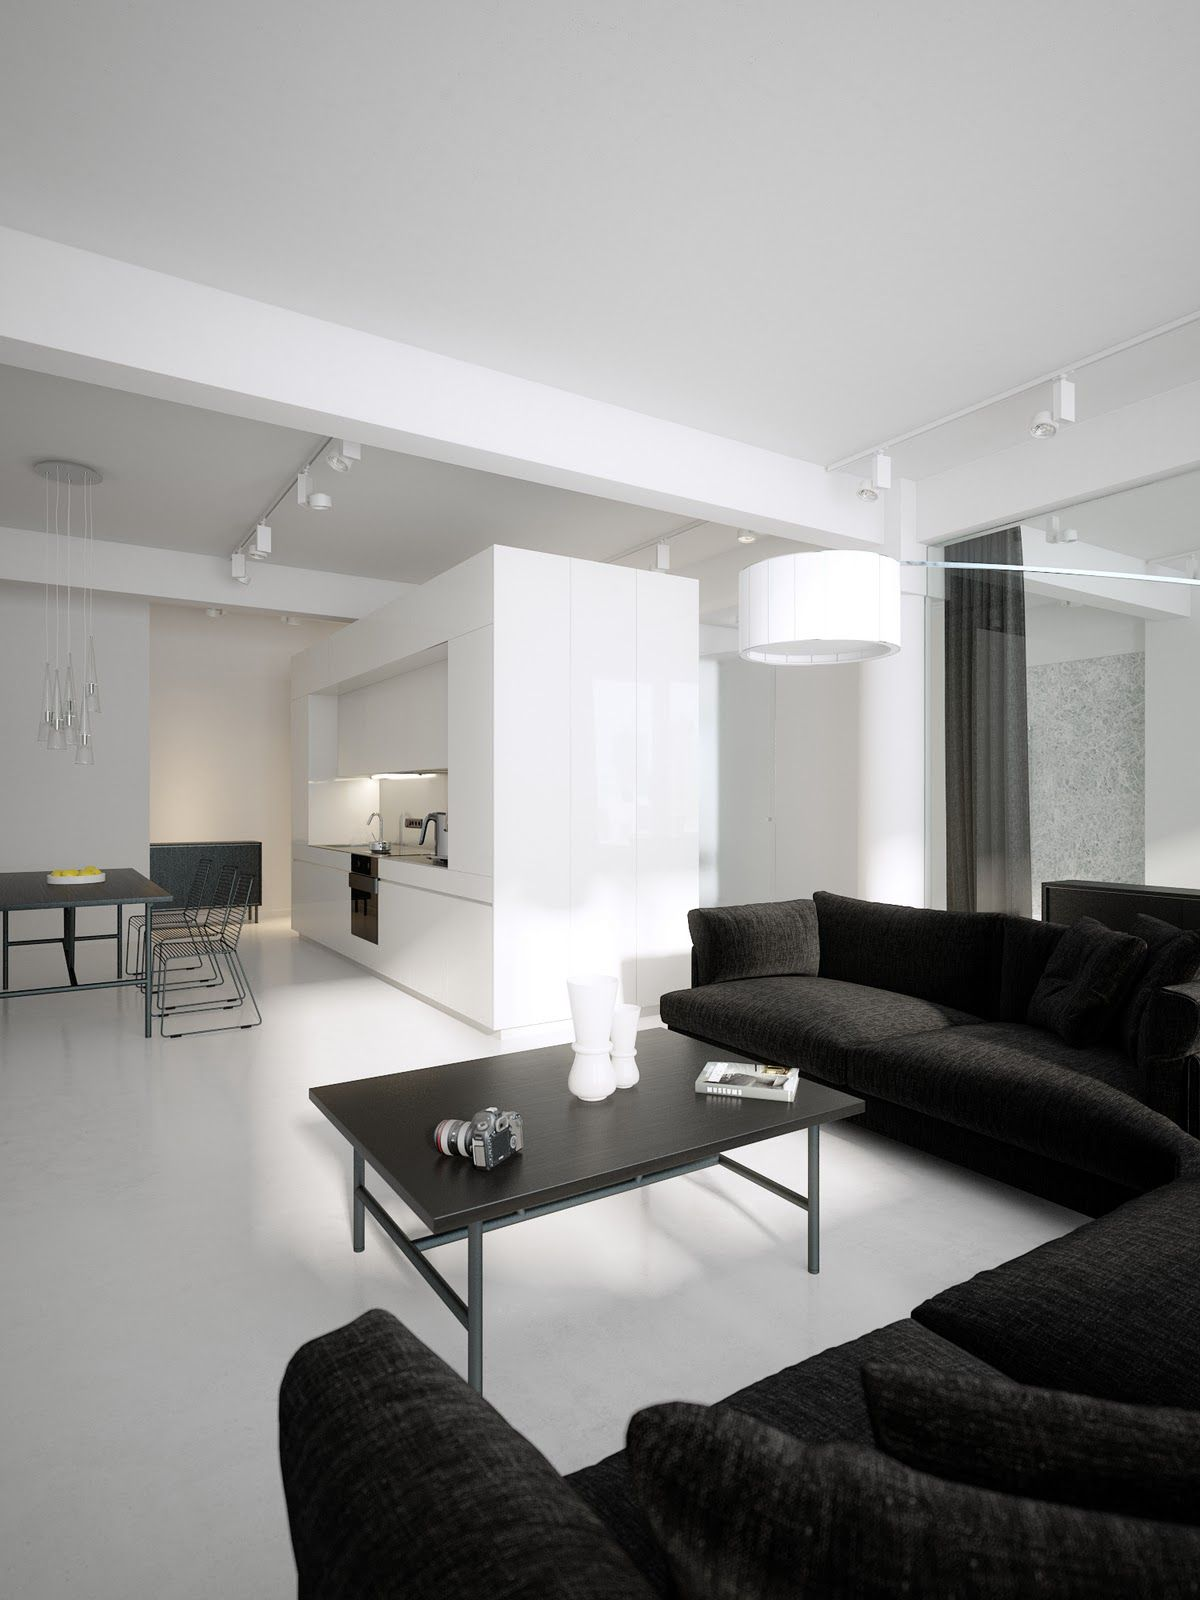 Find this pin and more on loft ideas luxury minimalist loft designs in black and white